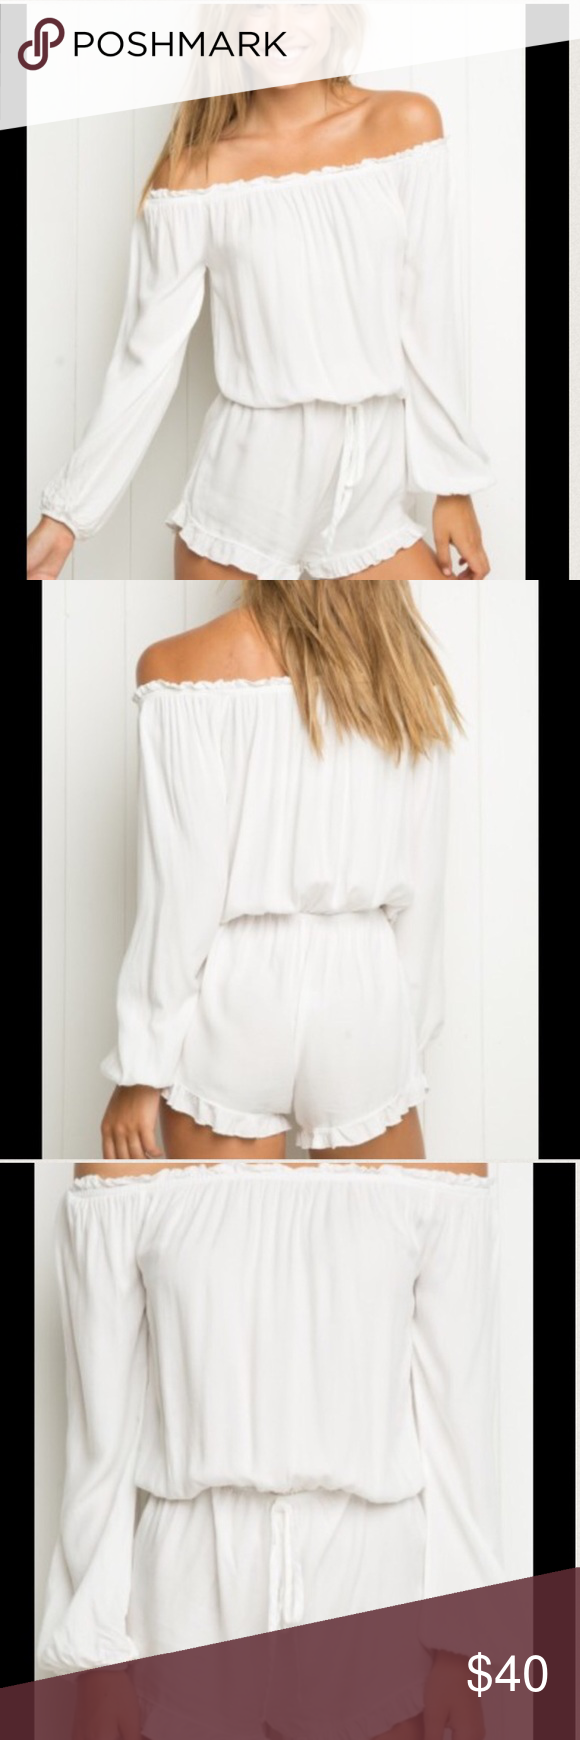 NWT - Brandy Melville Off the Shoulder Romper Never worn. Sold out in stores. Ties at waist. Ruffle detail across top and at short hem. Elastic shoulder and wrist hem. Brandy Melville Dresses Long Sleeve